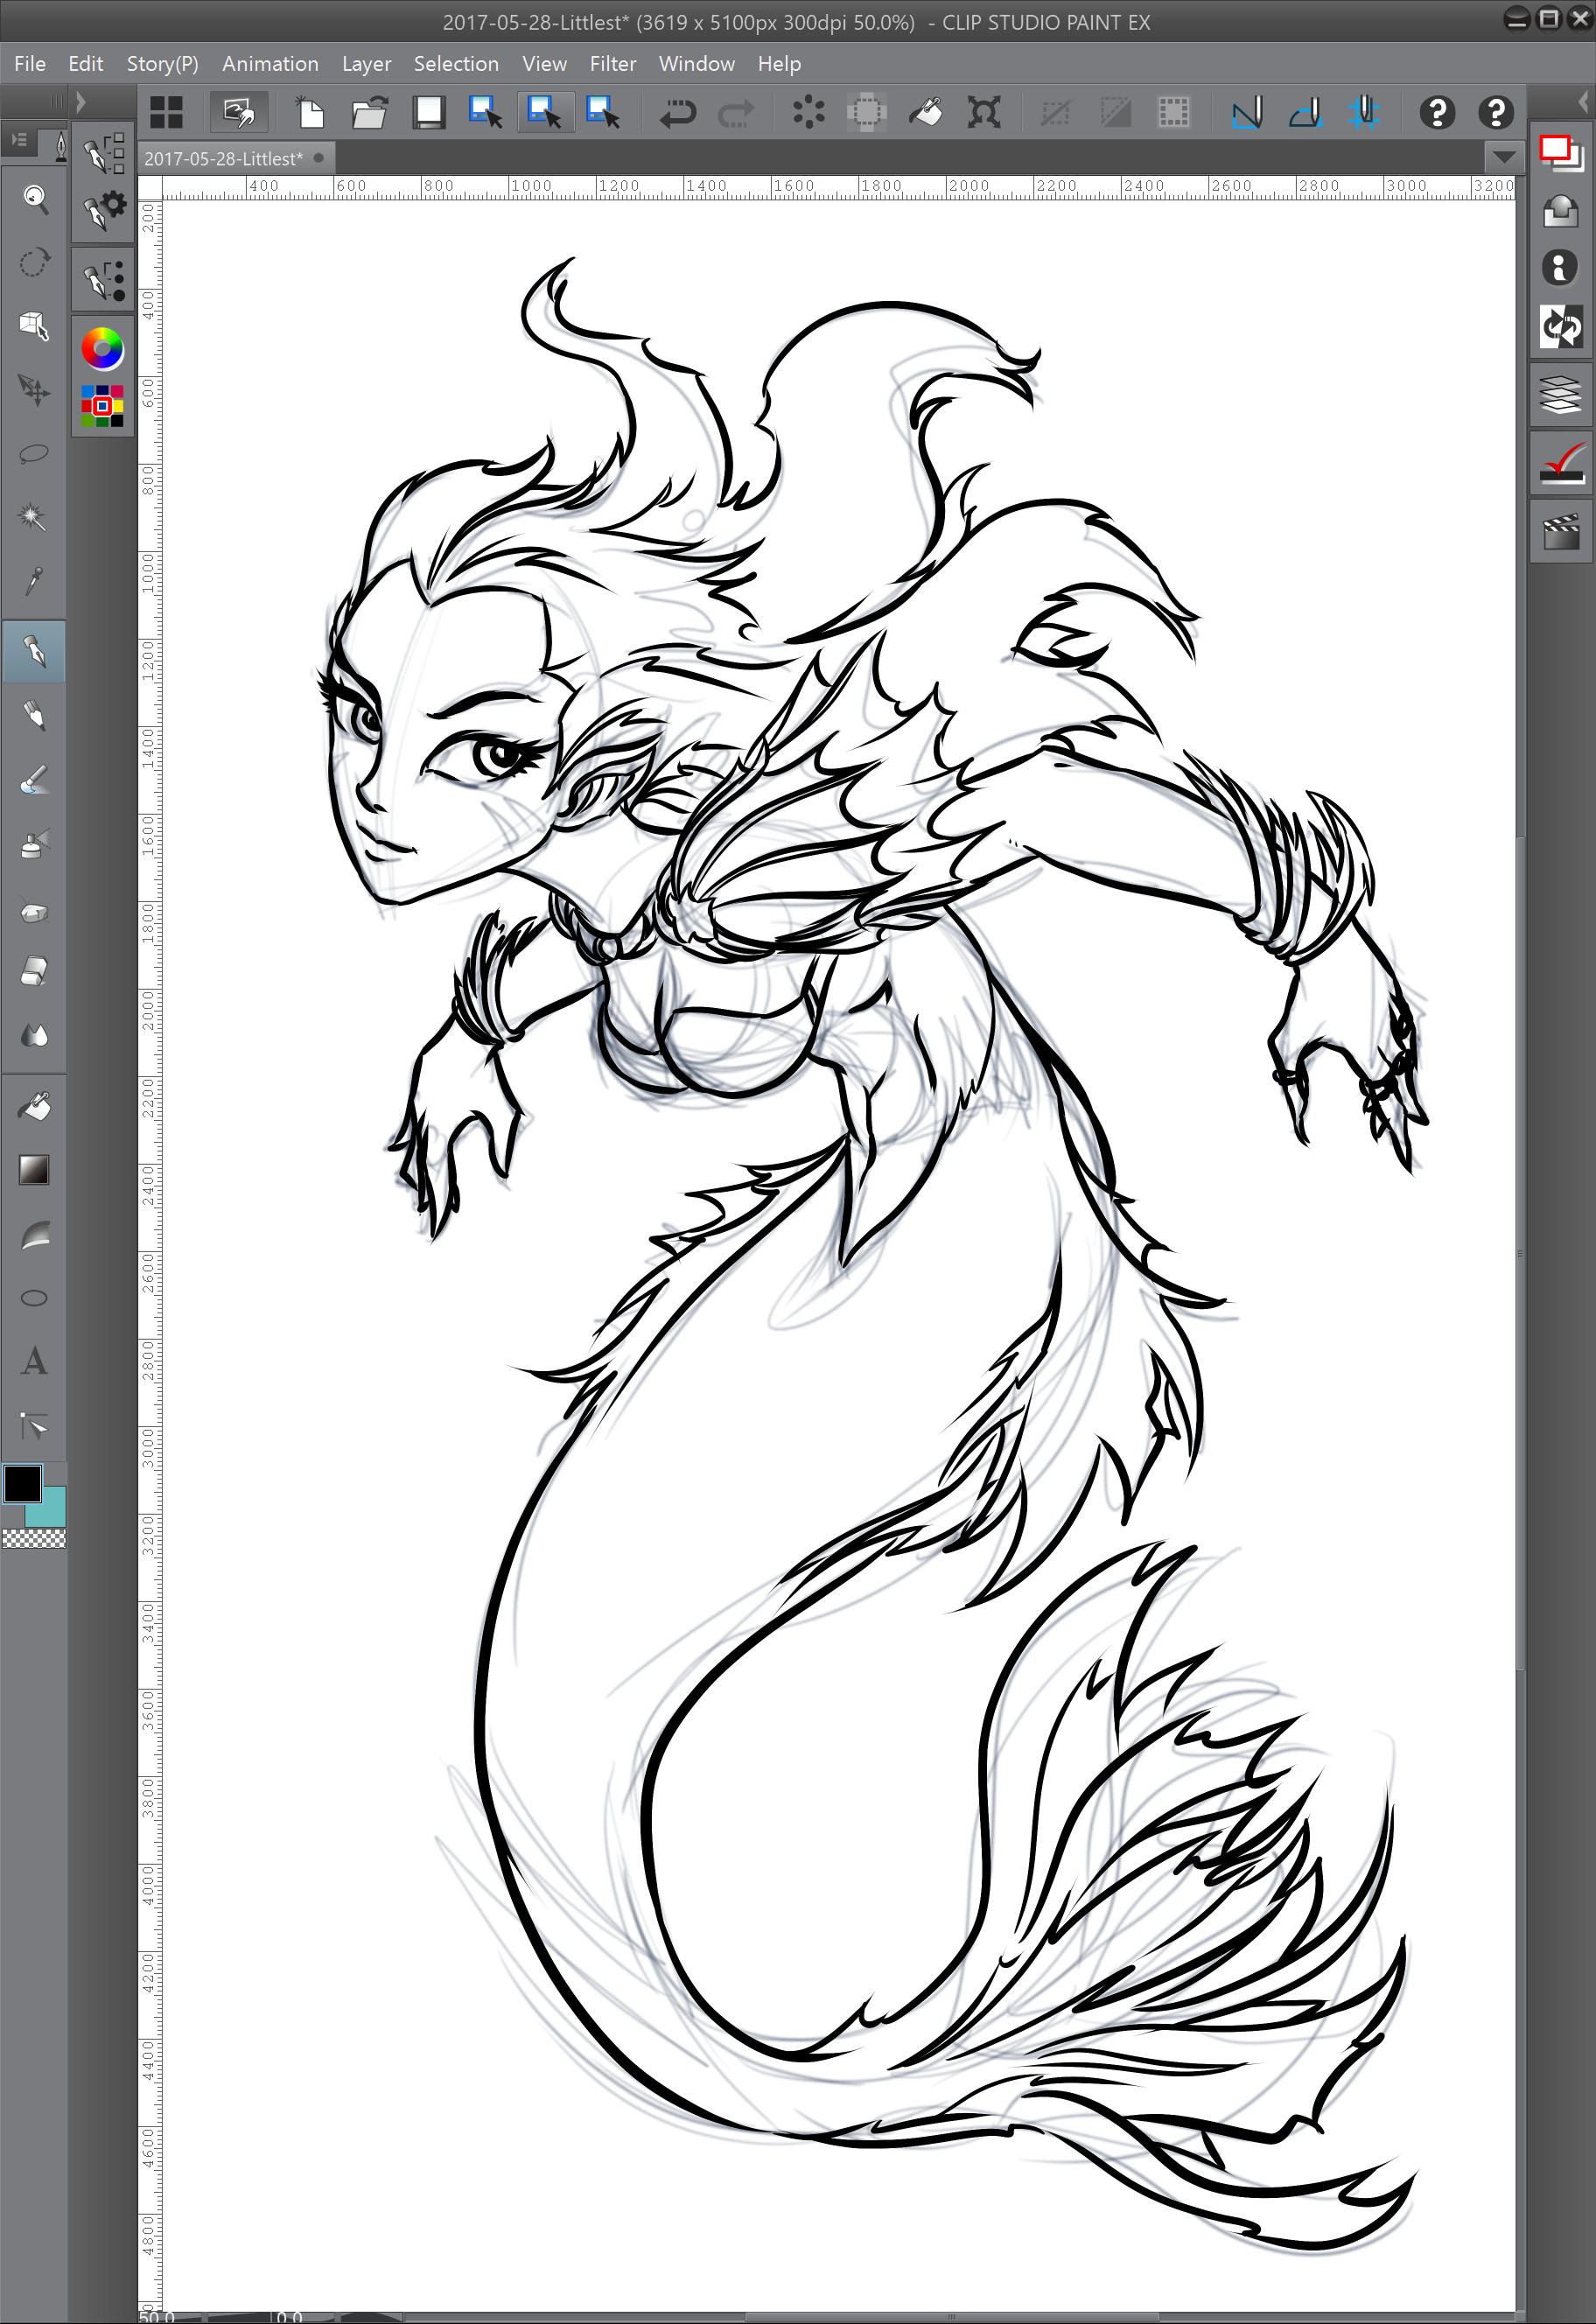 03 - Inking over the rough lines